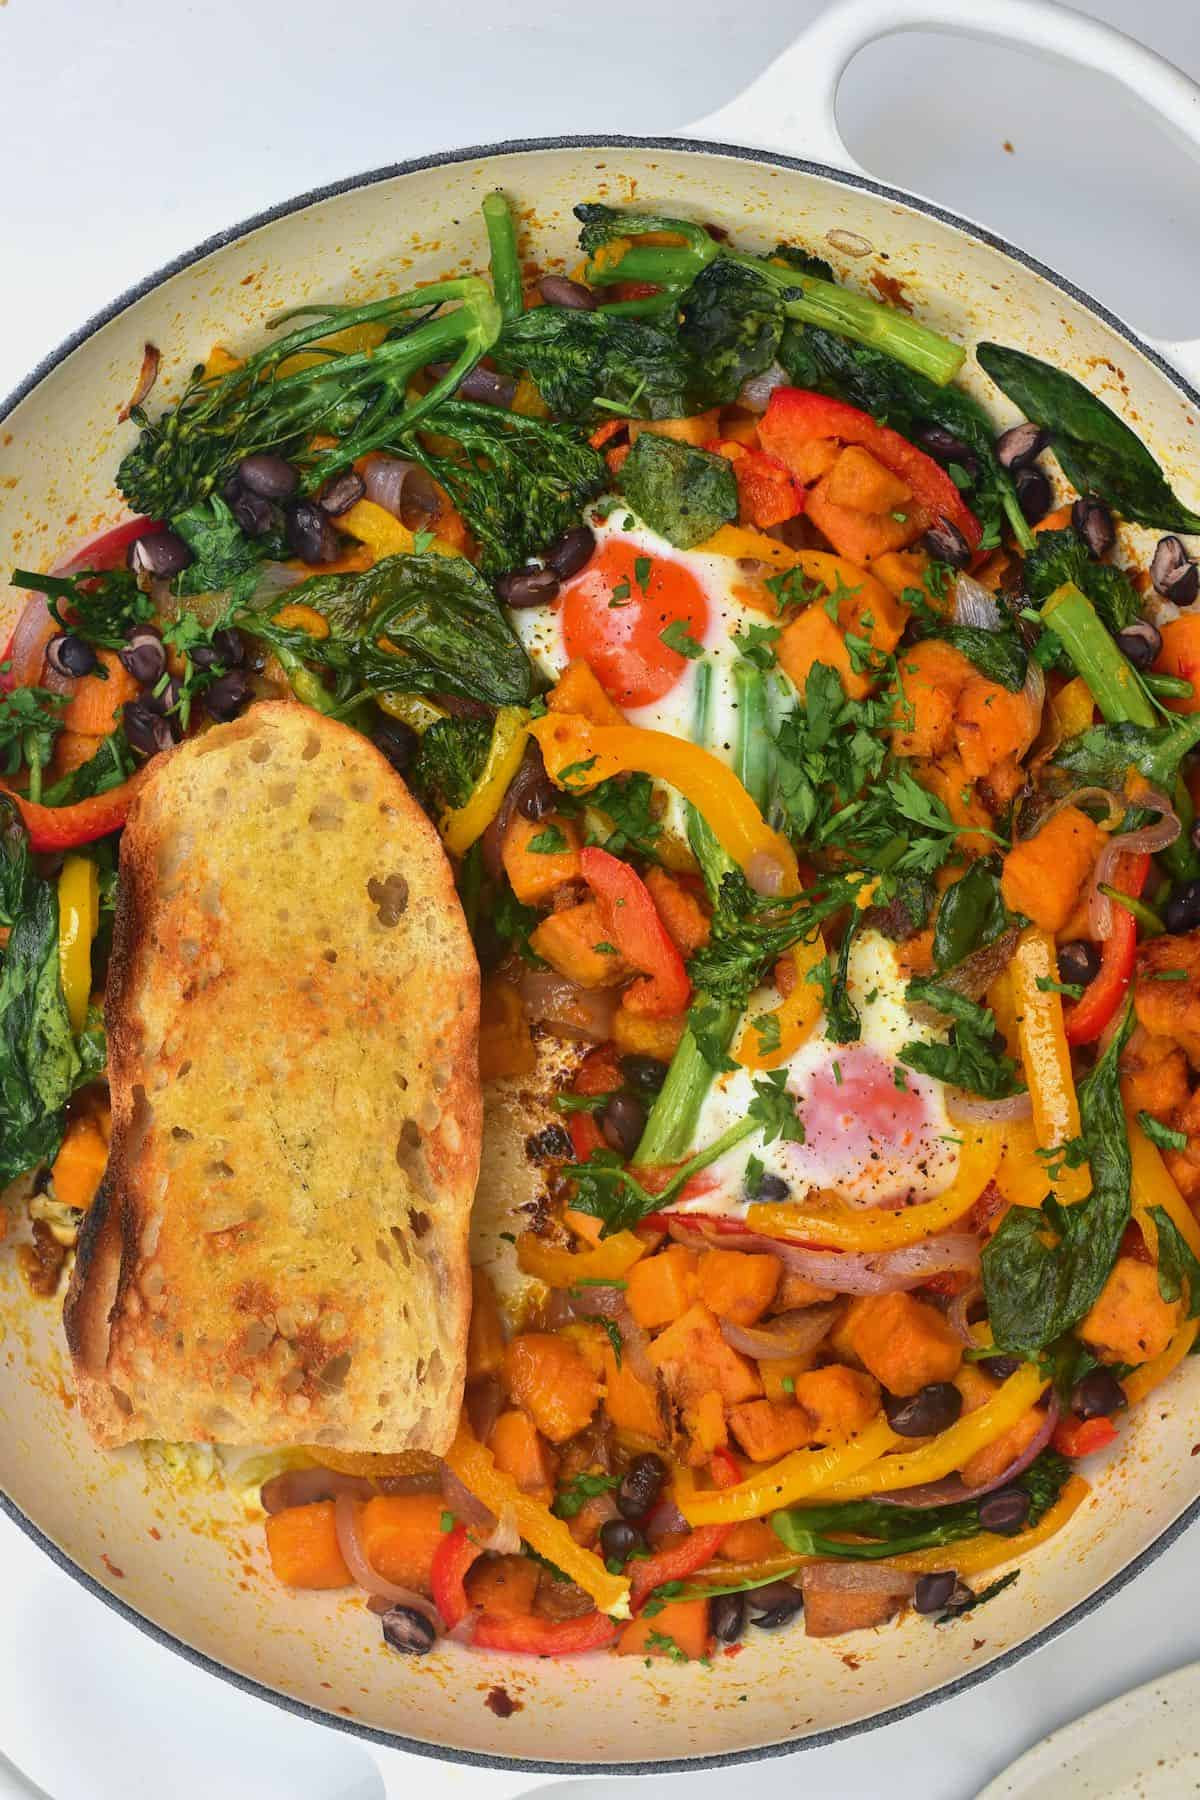 Sweet potato hash and toasted bread in a pan